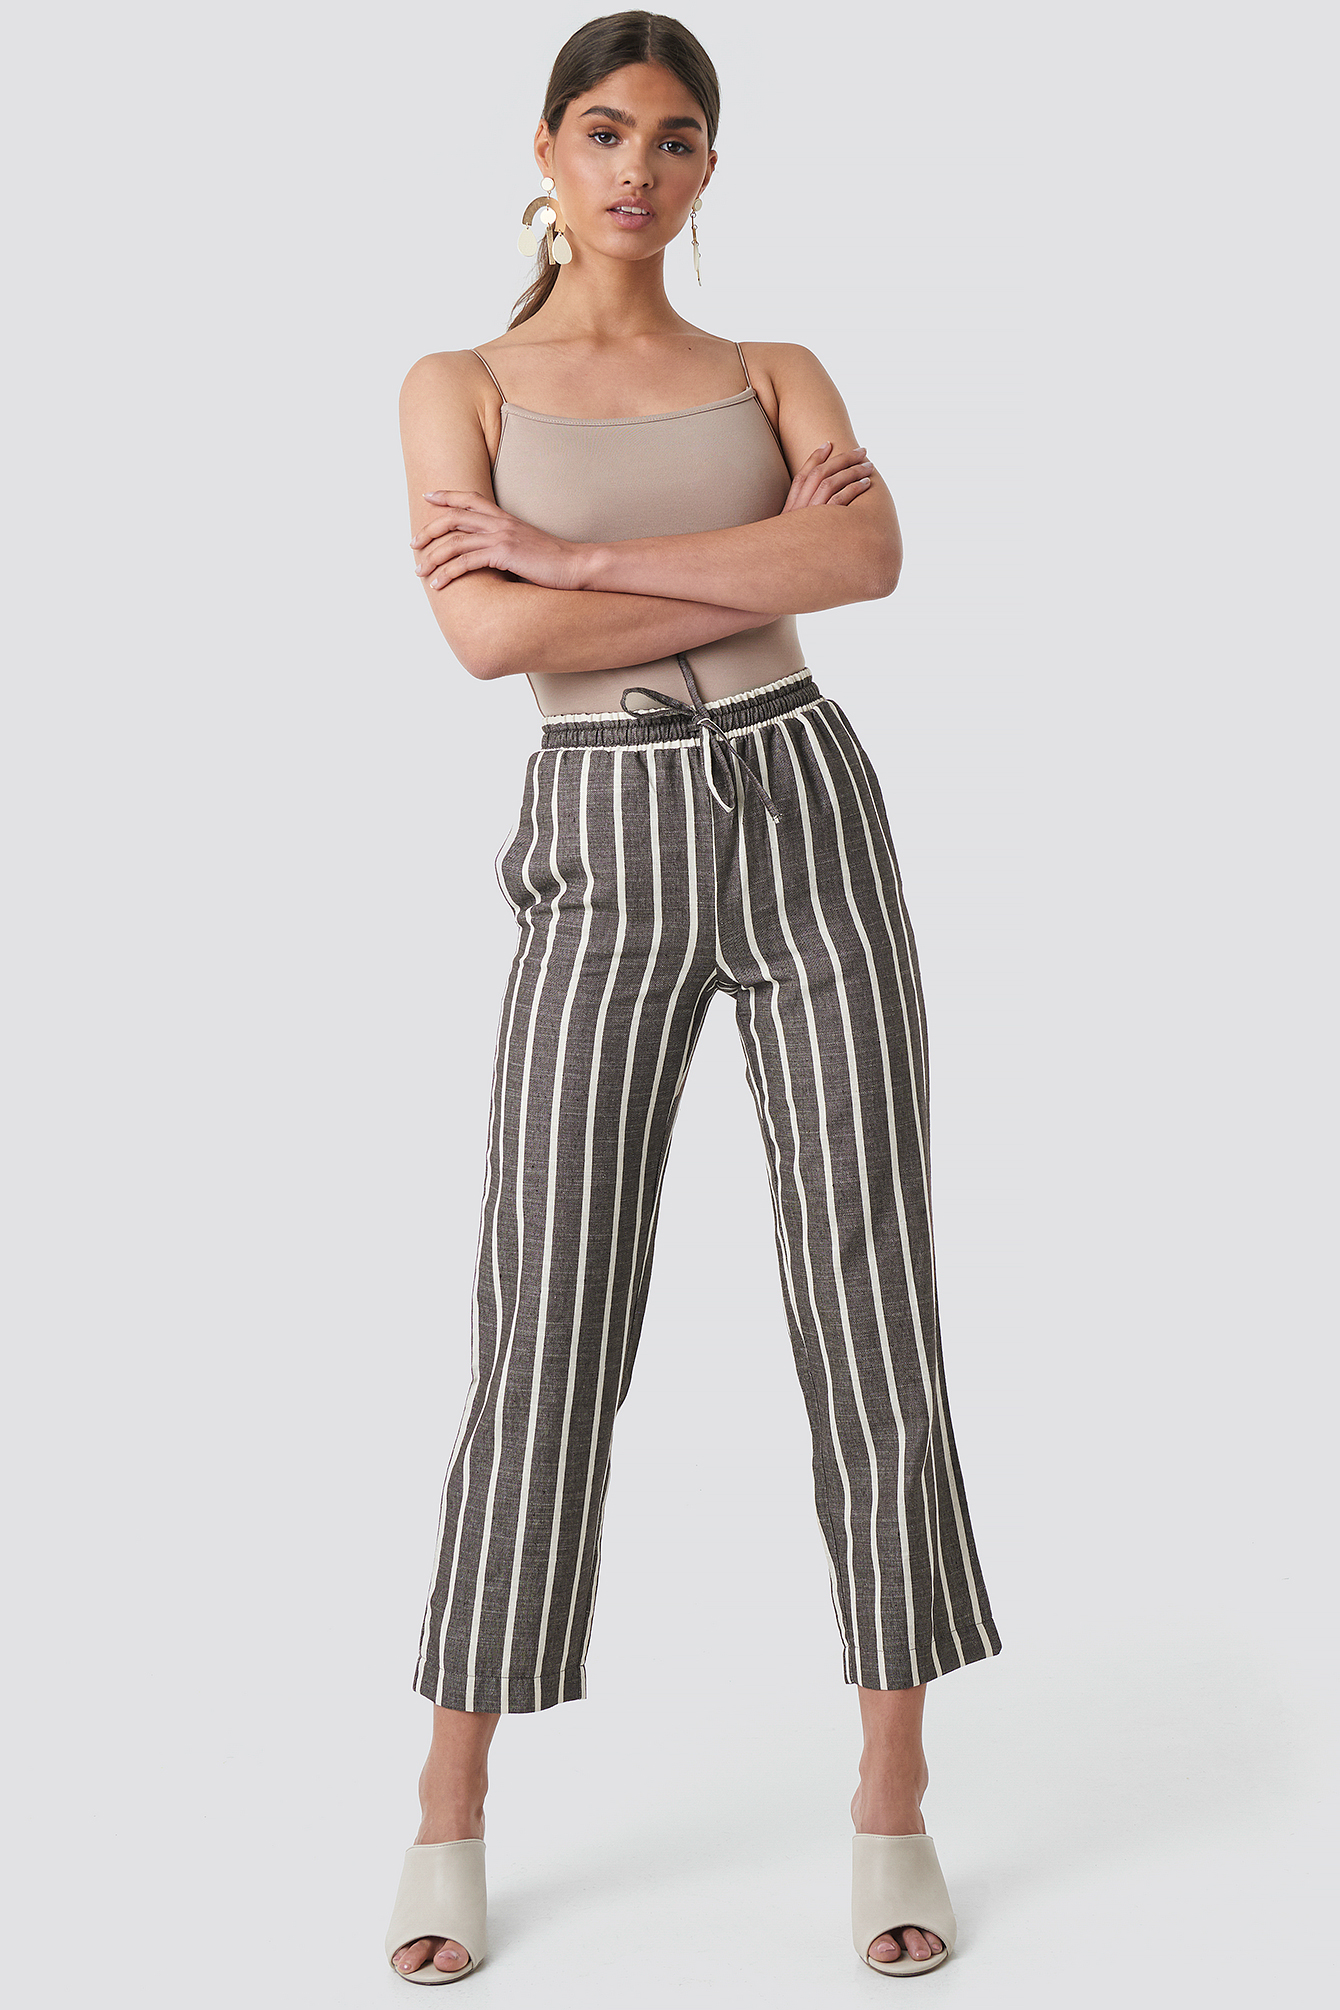 Brown Linen Look Striped Pants